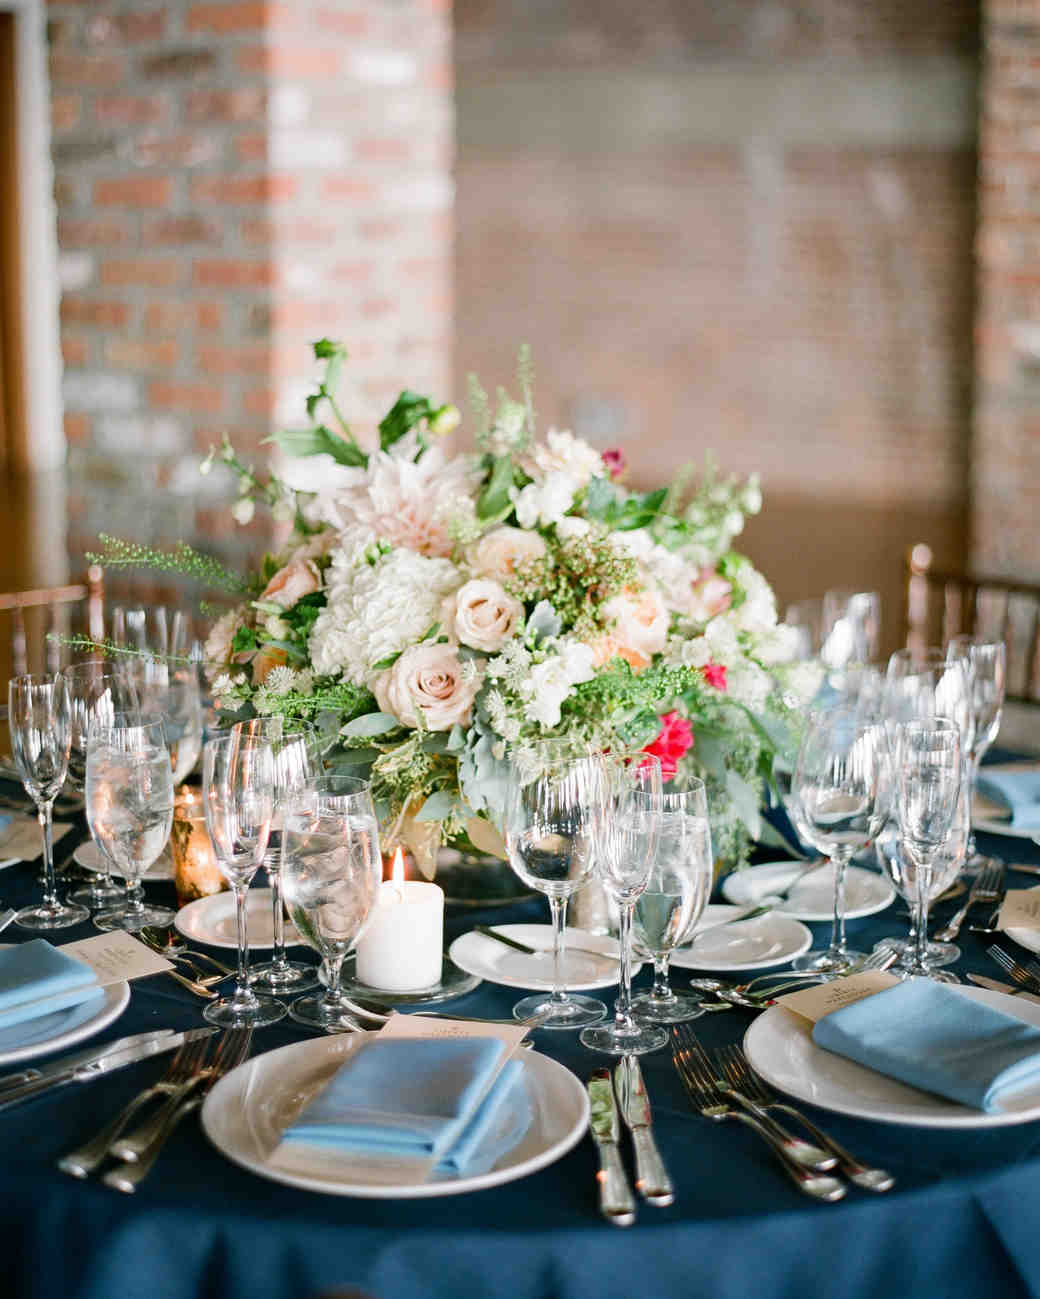 75 Great Wedding Centerpieces